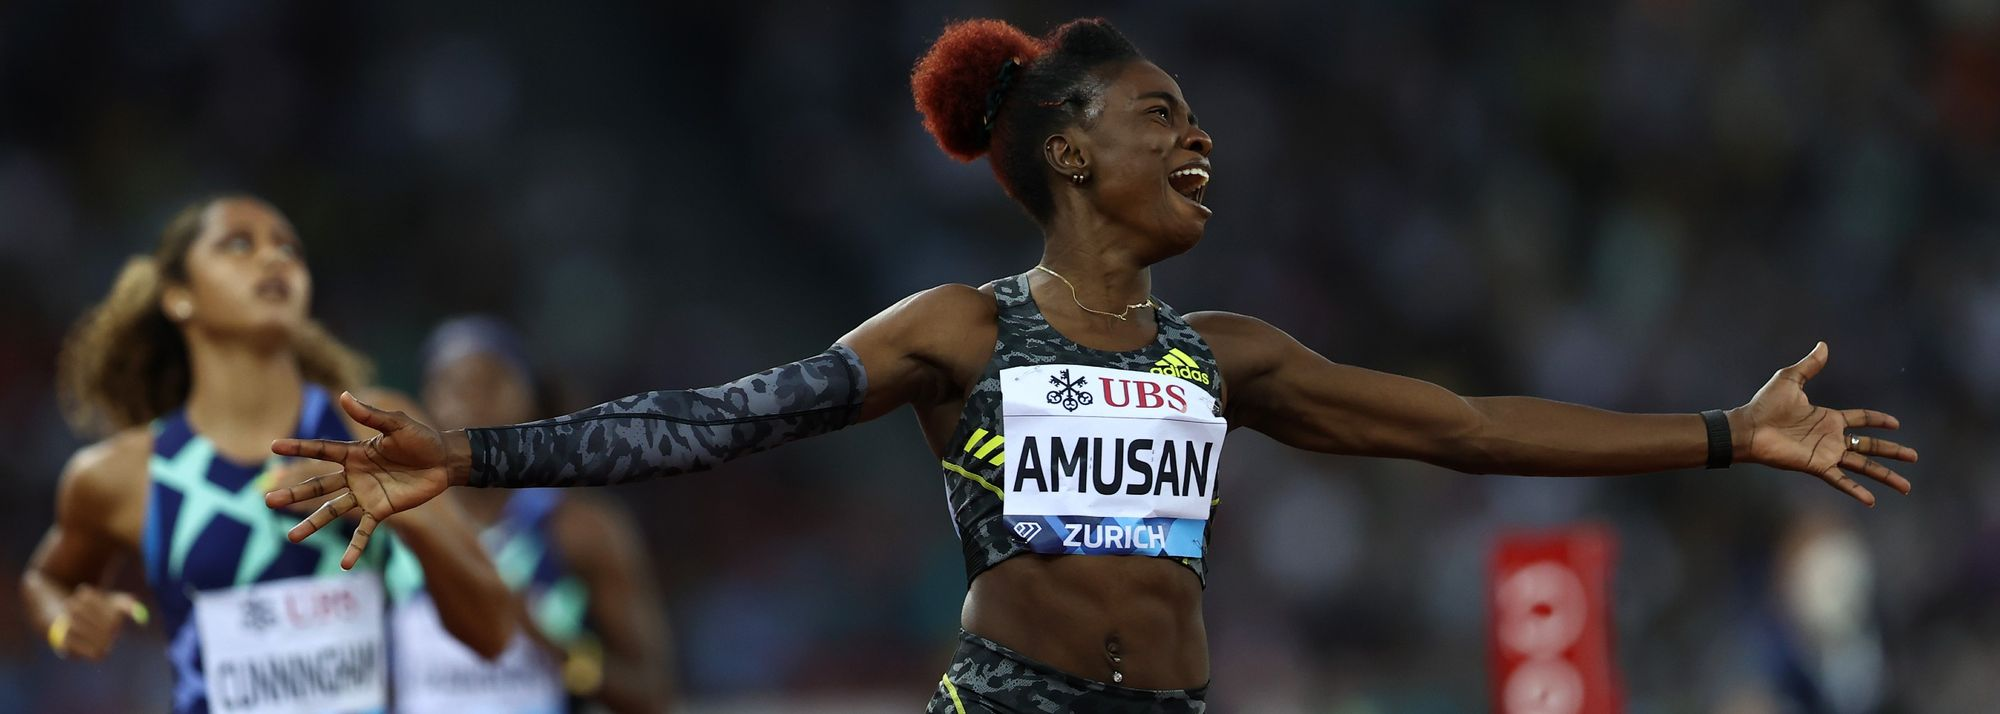 """""""I'll come back stronger."""" That was the promise Nigerian hurdler Tobi Amusan made to herself and her fans after placing fourth in the 100m hurdles at the Tokyo Olympics."""